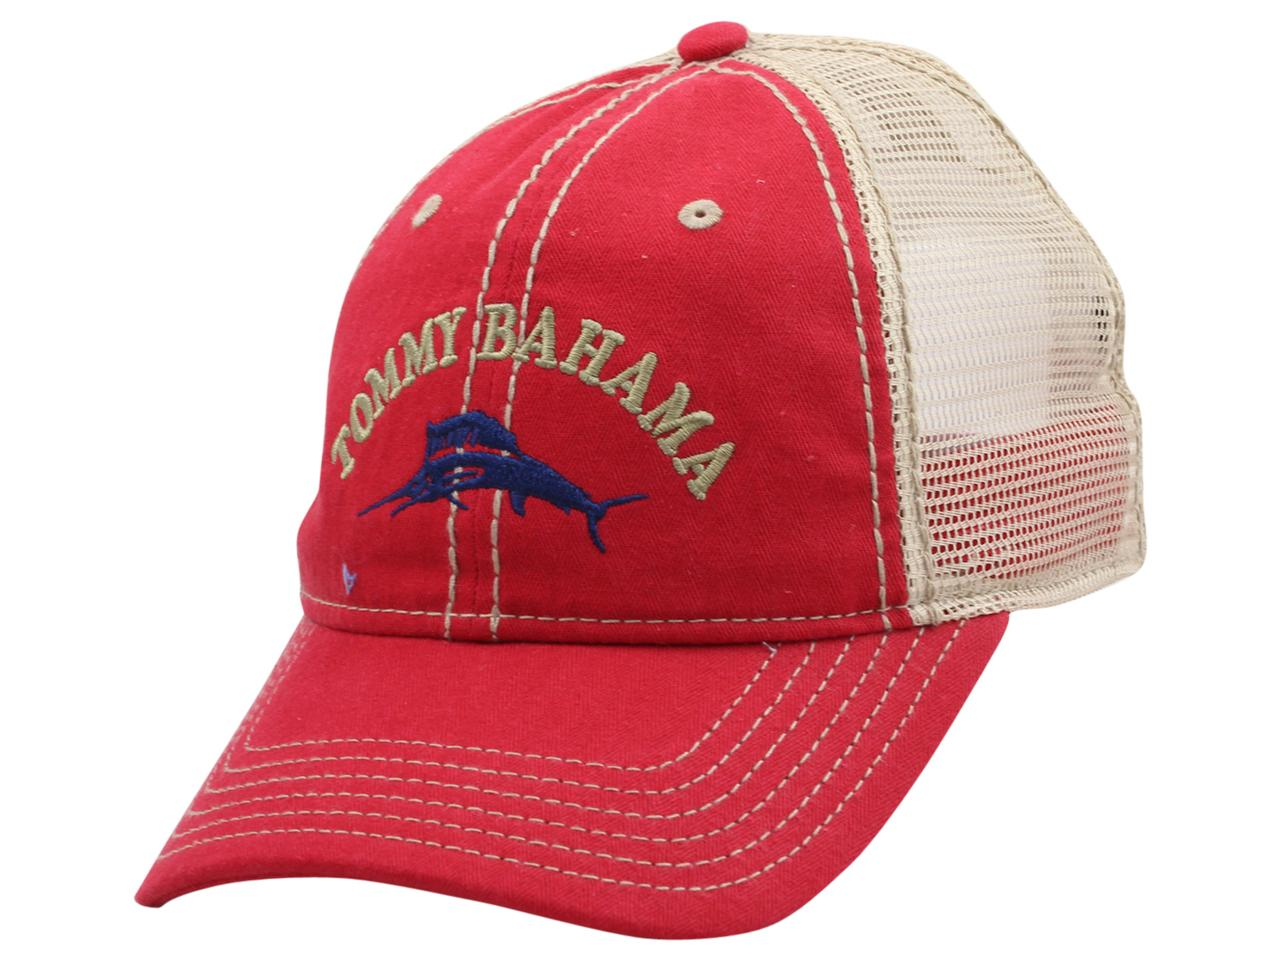 Image of Tommy Bahama Men's Strapback Trucker Cap Baseball Hat - Red - One Size Fits Most